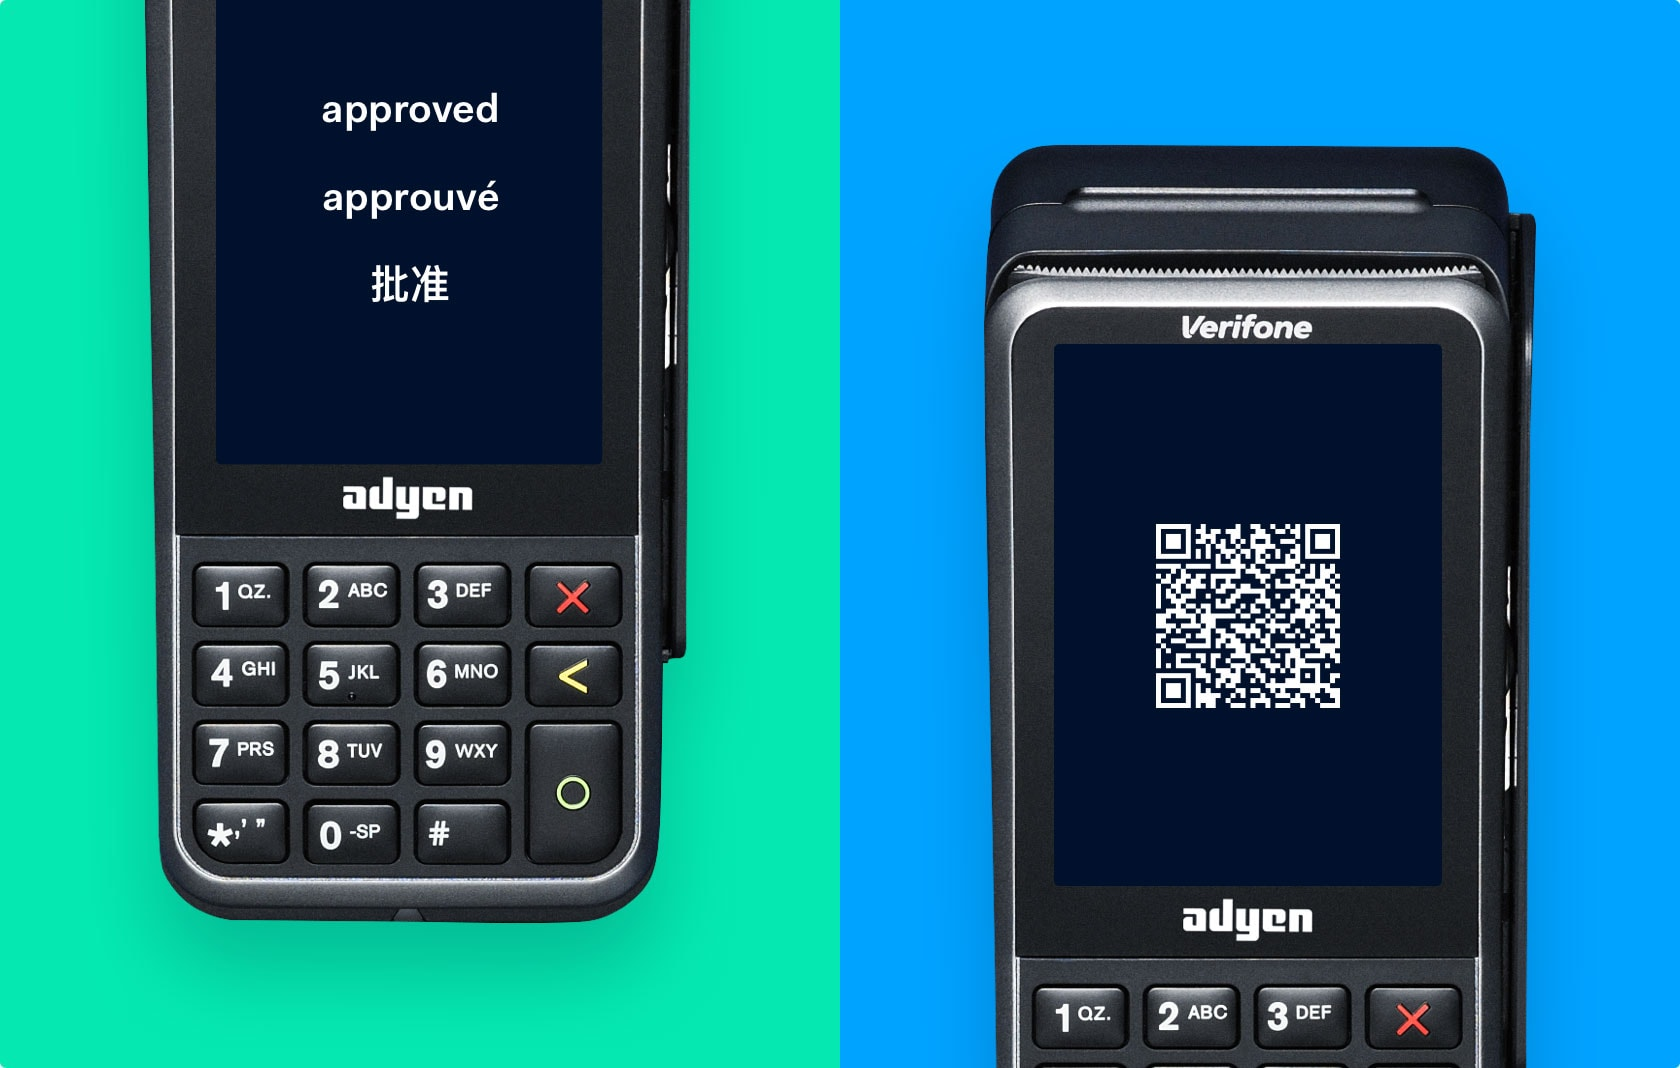 POS payments | One solution for all POS payments - Adyen